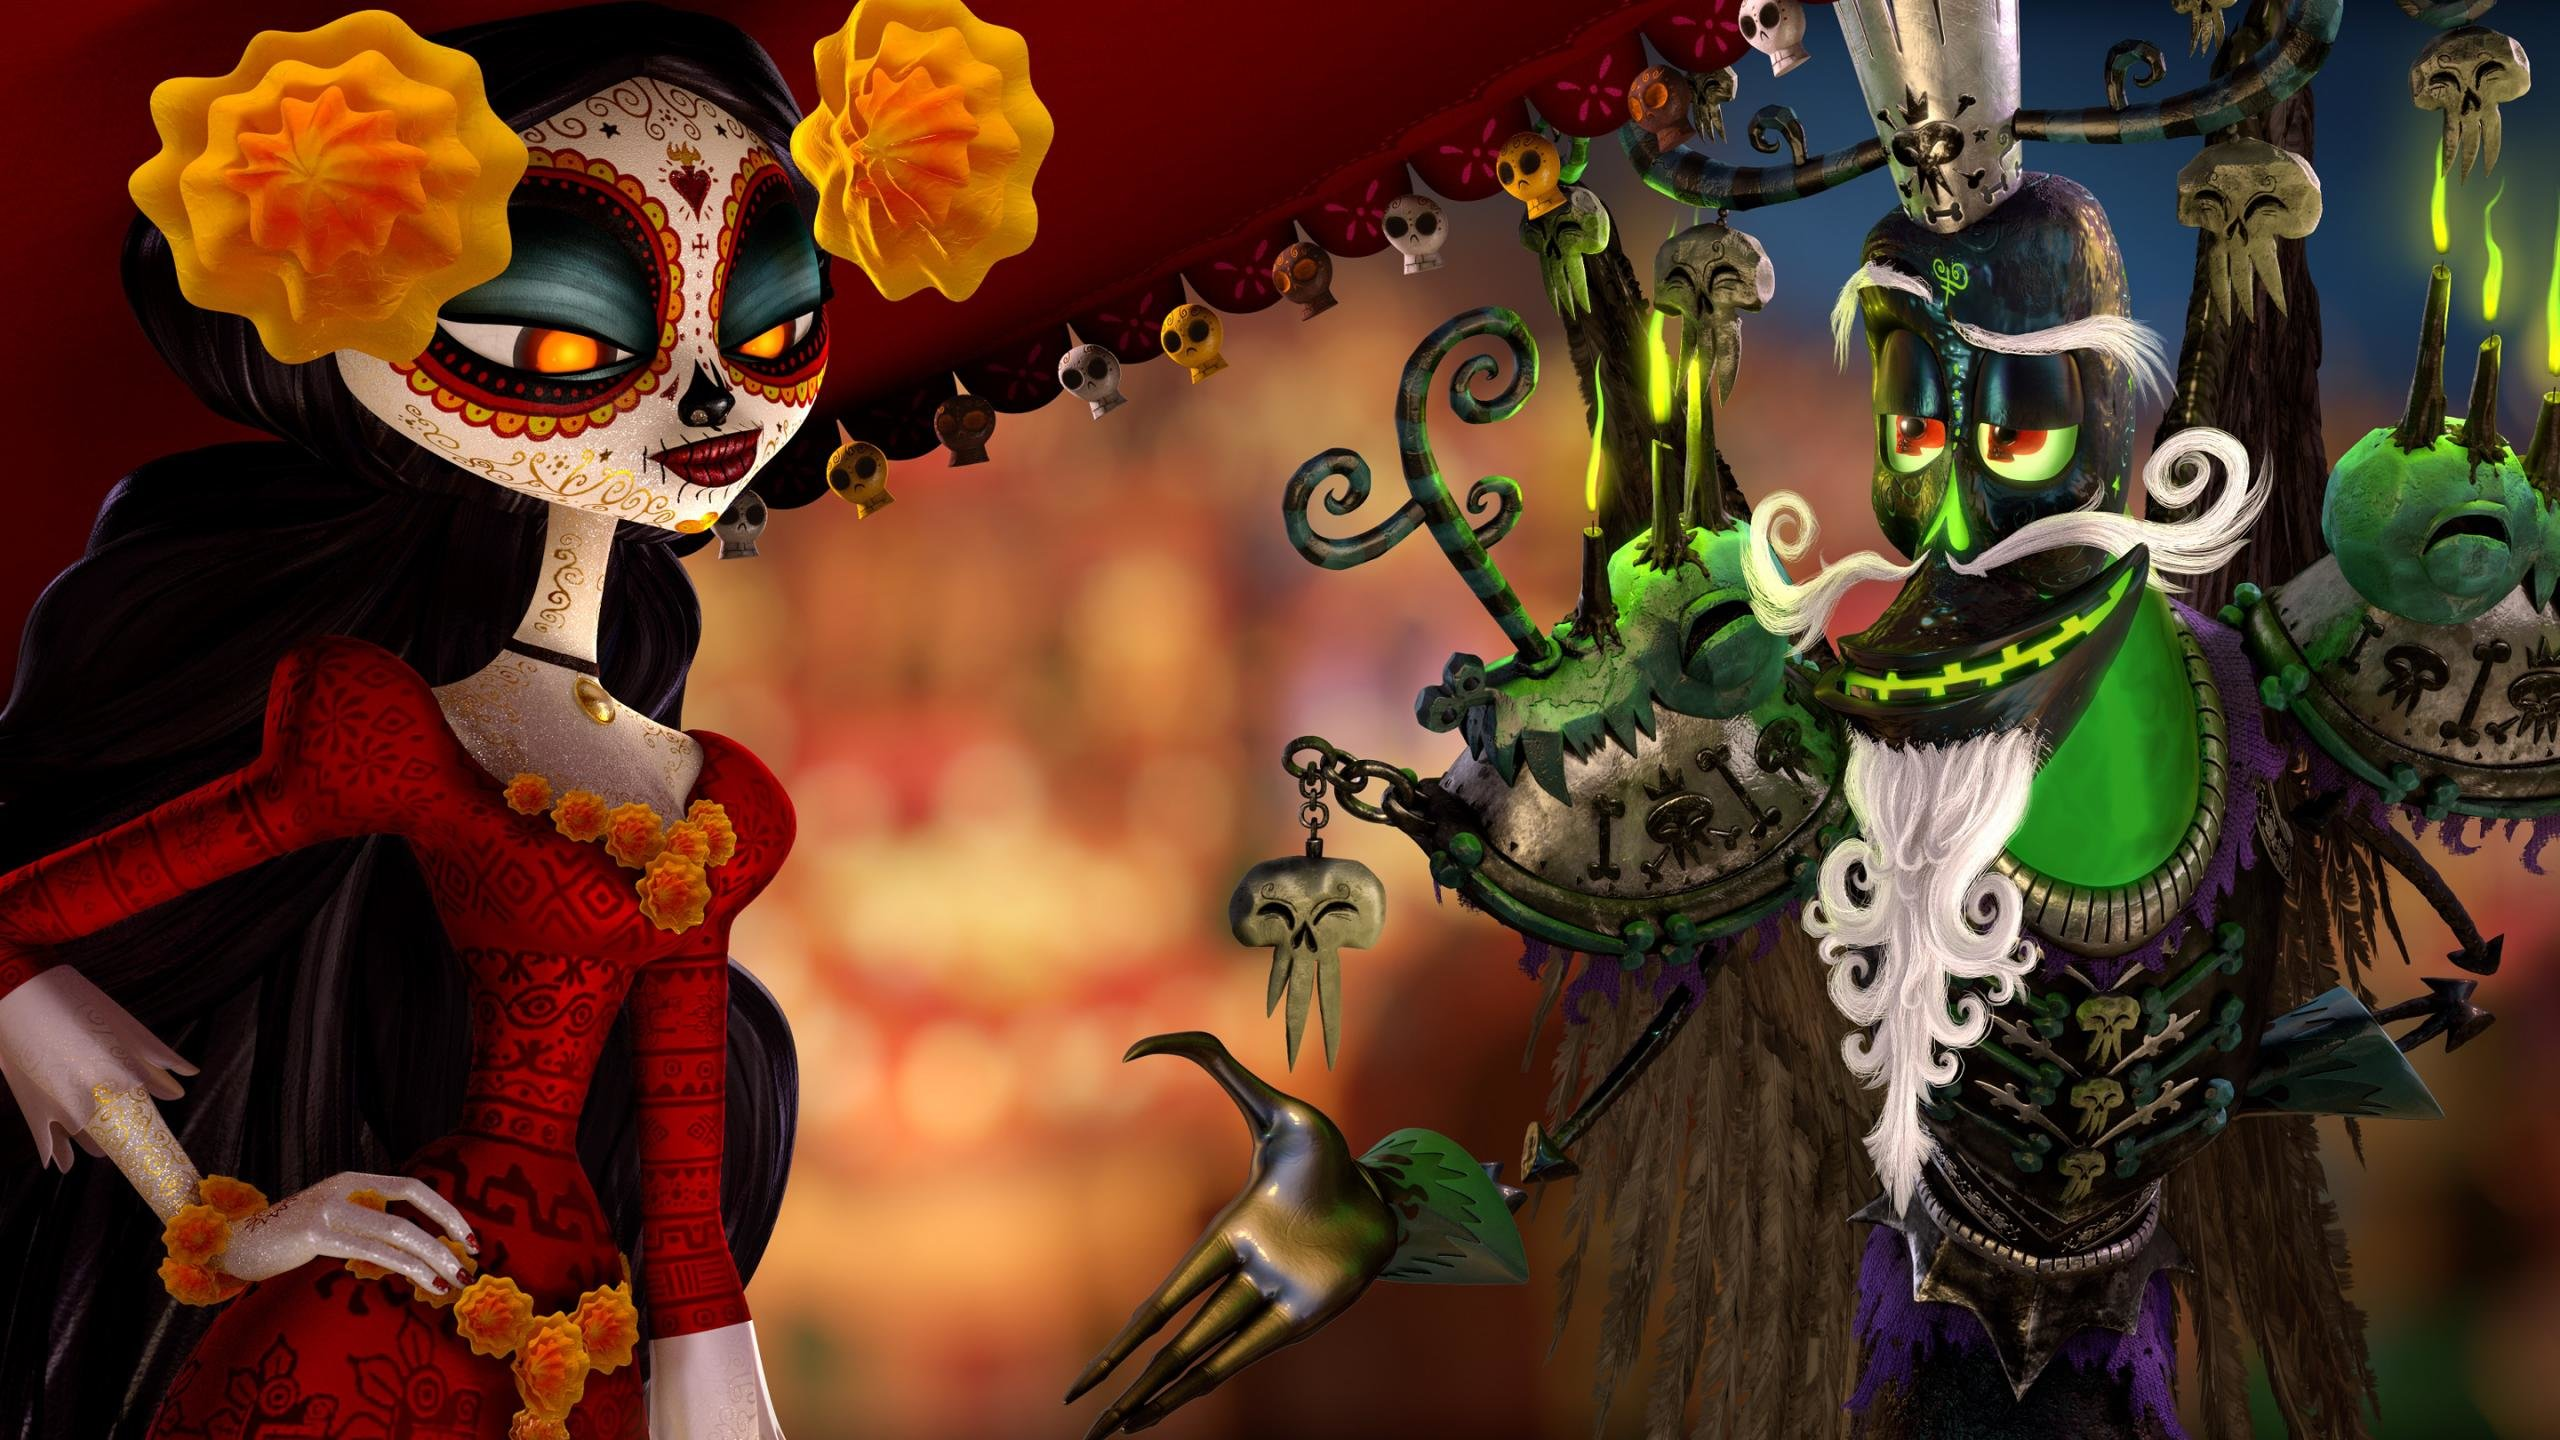 The Book Of Life Wallpapers 2560x1440 Desktop Backgrounds